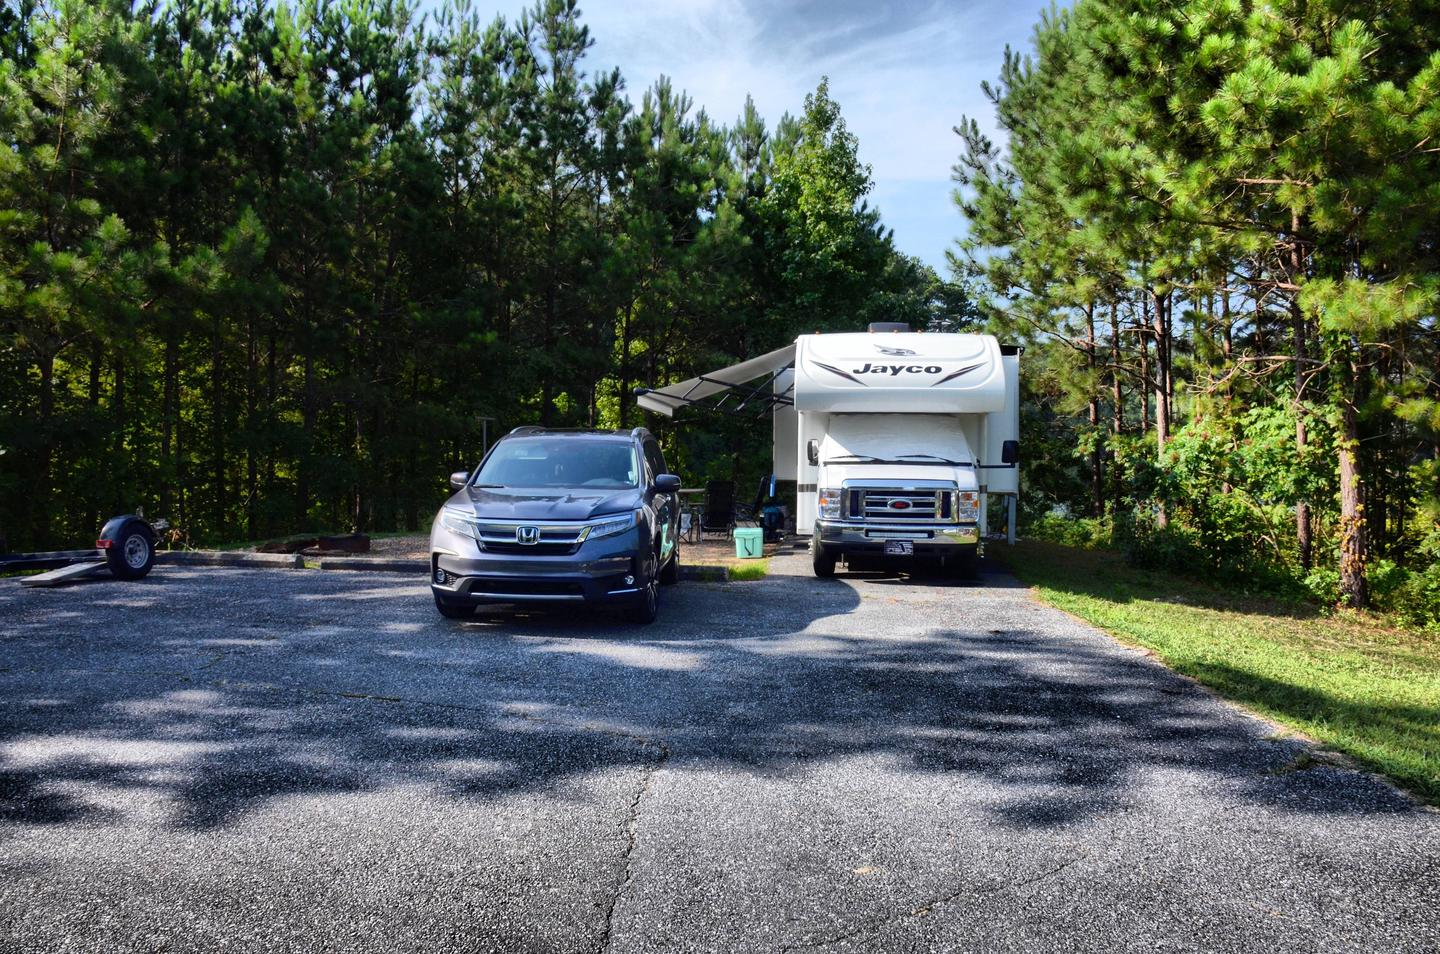 Parking, driveway slope, awning-side clearance.Payne Campground, campsite 34.